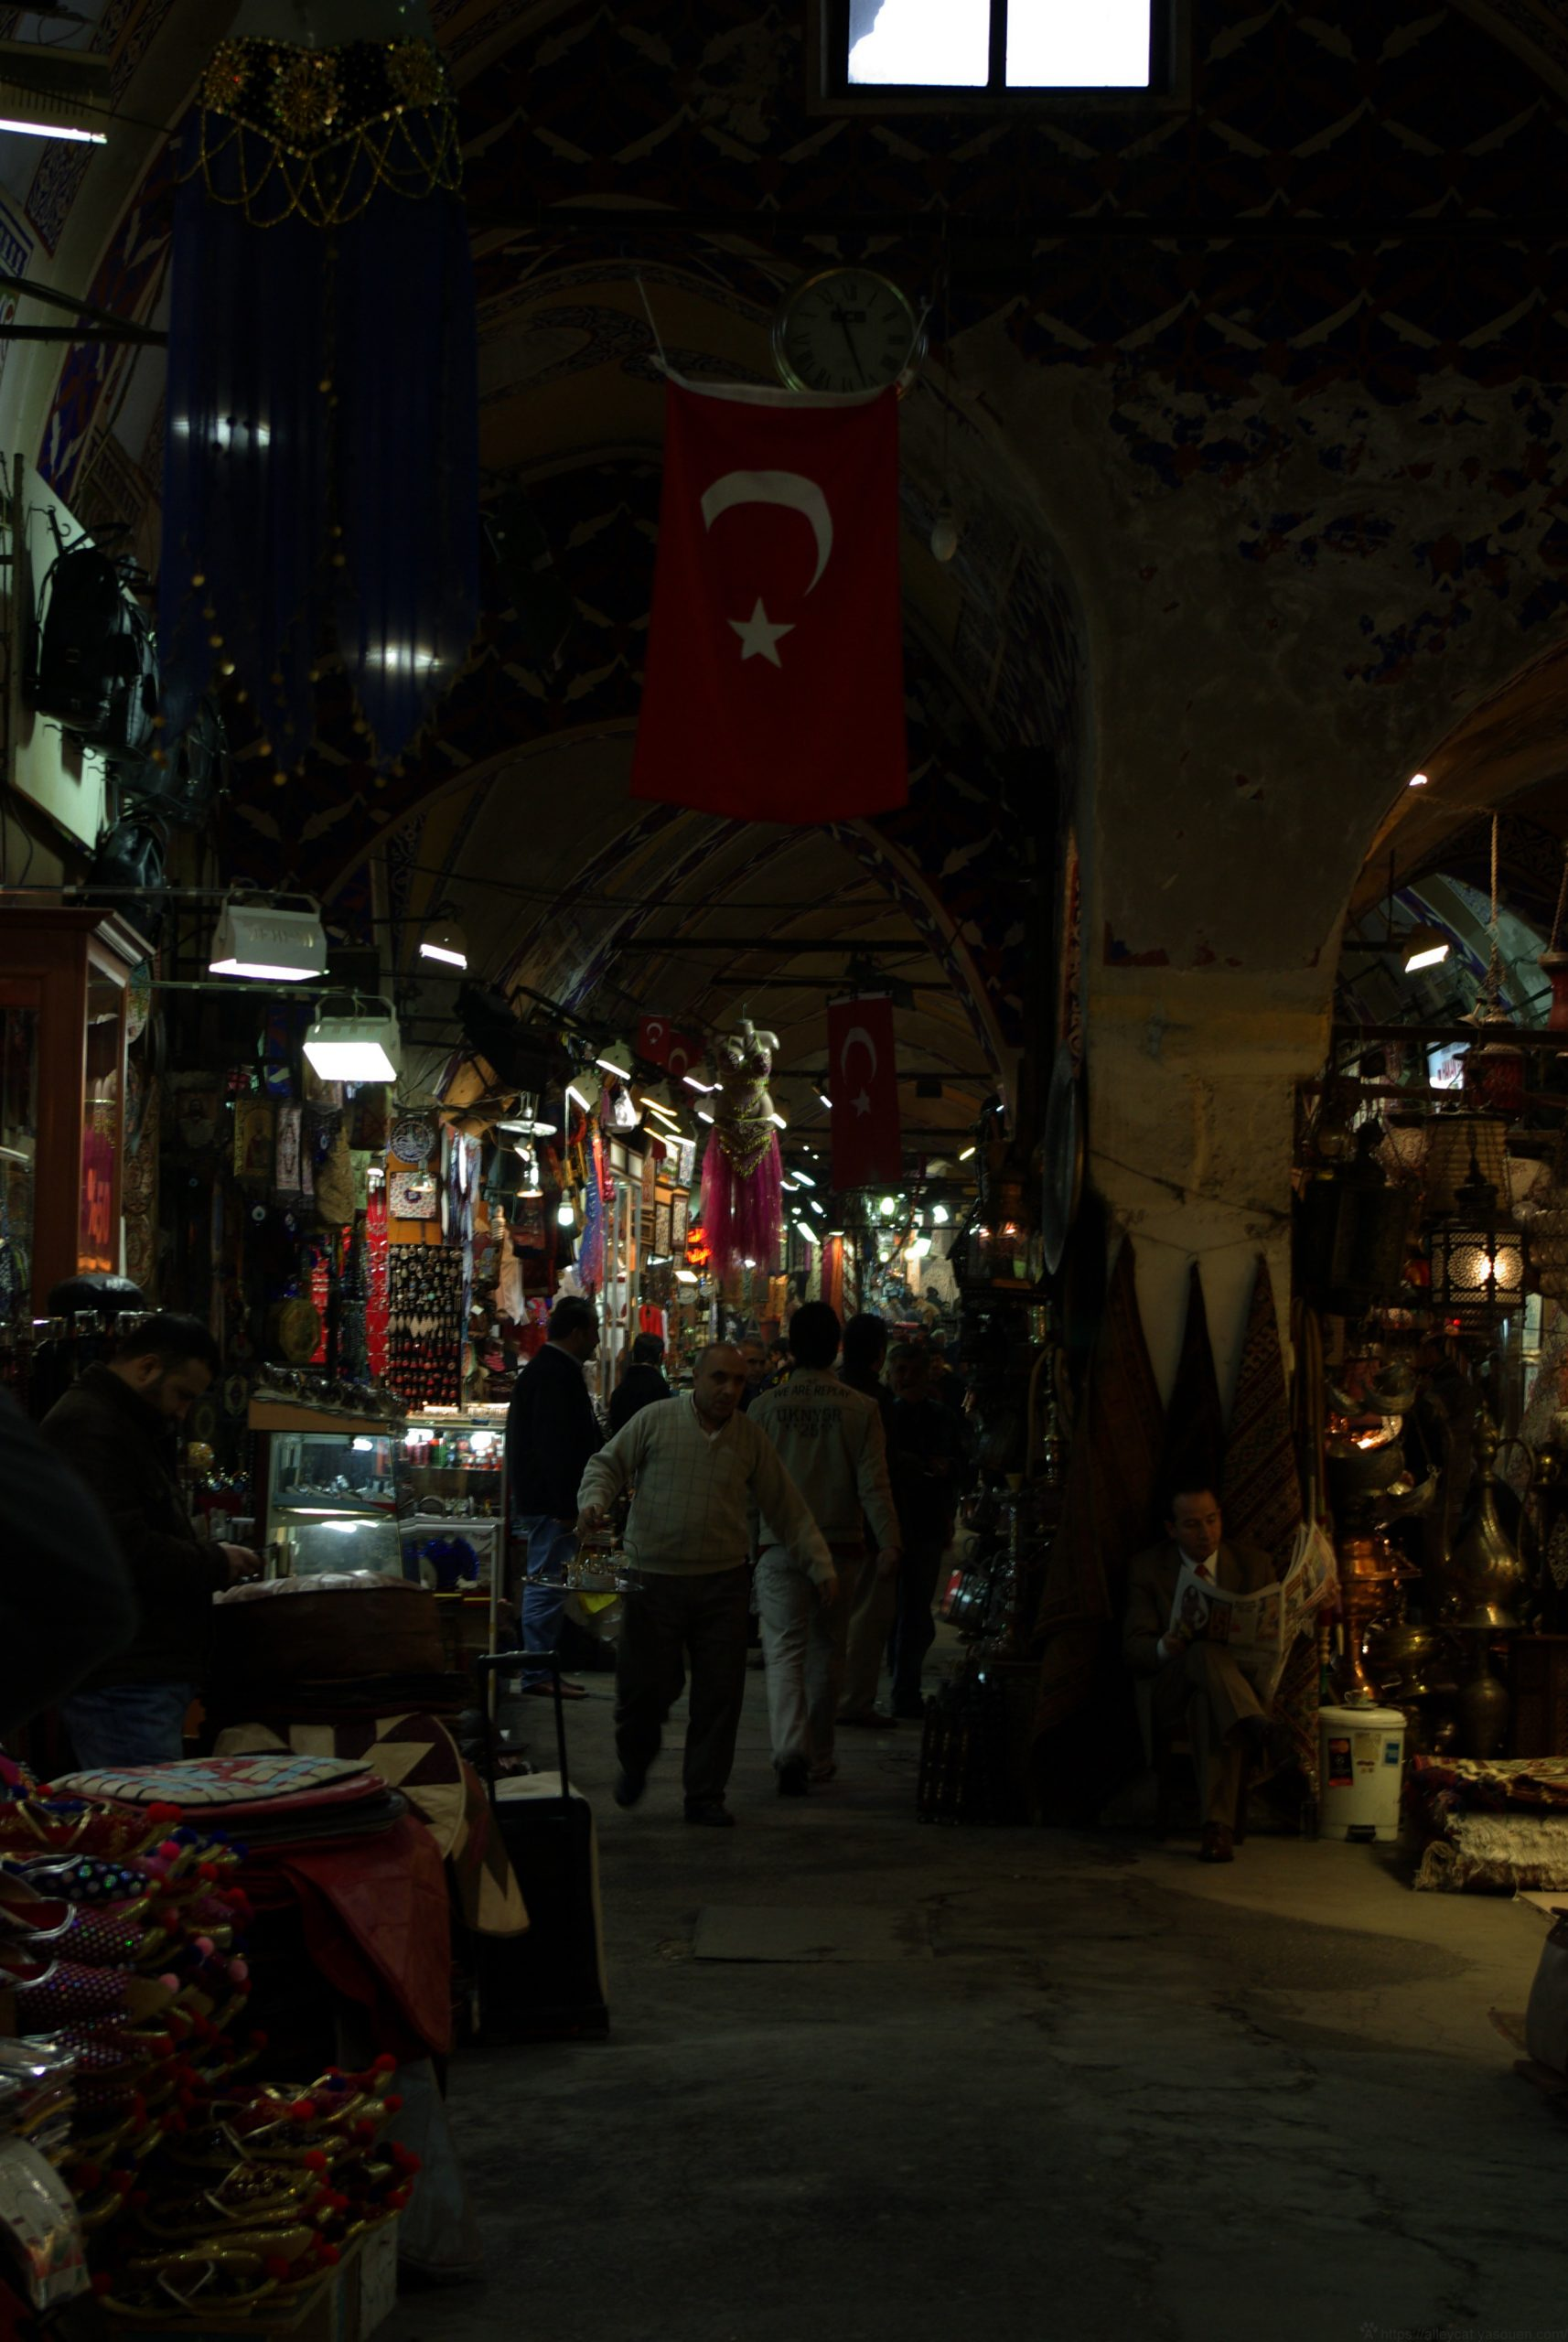 Grand Bazaar, Turkey, 2007